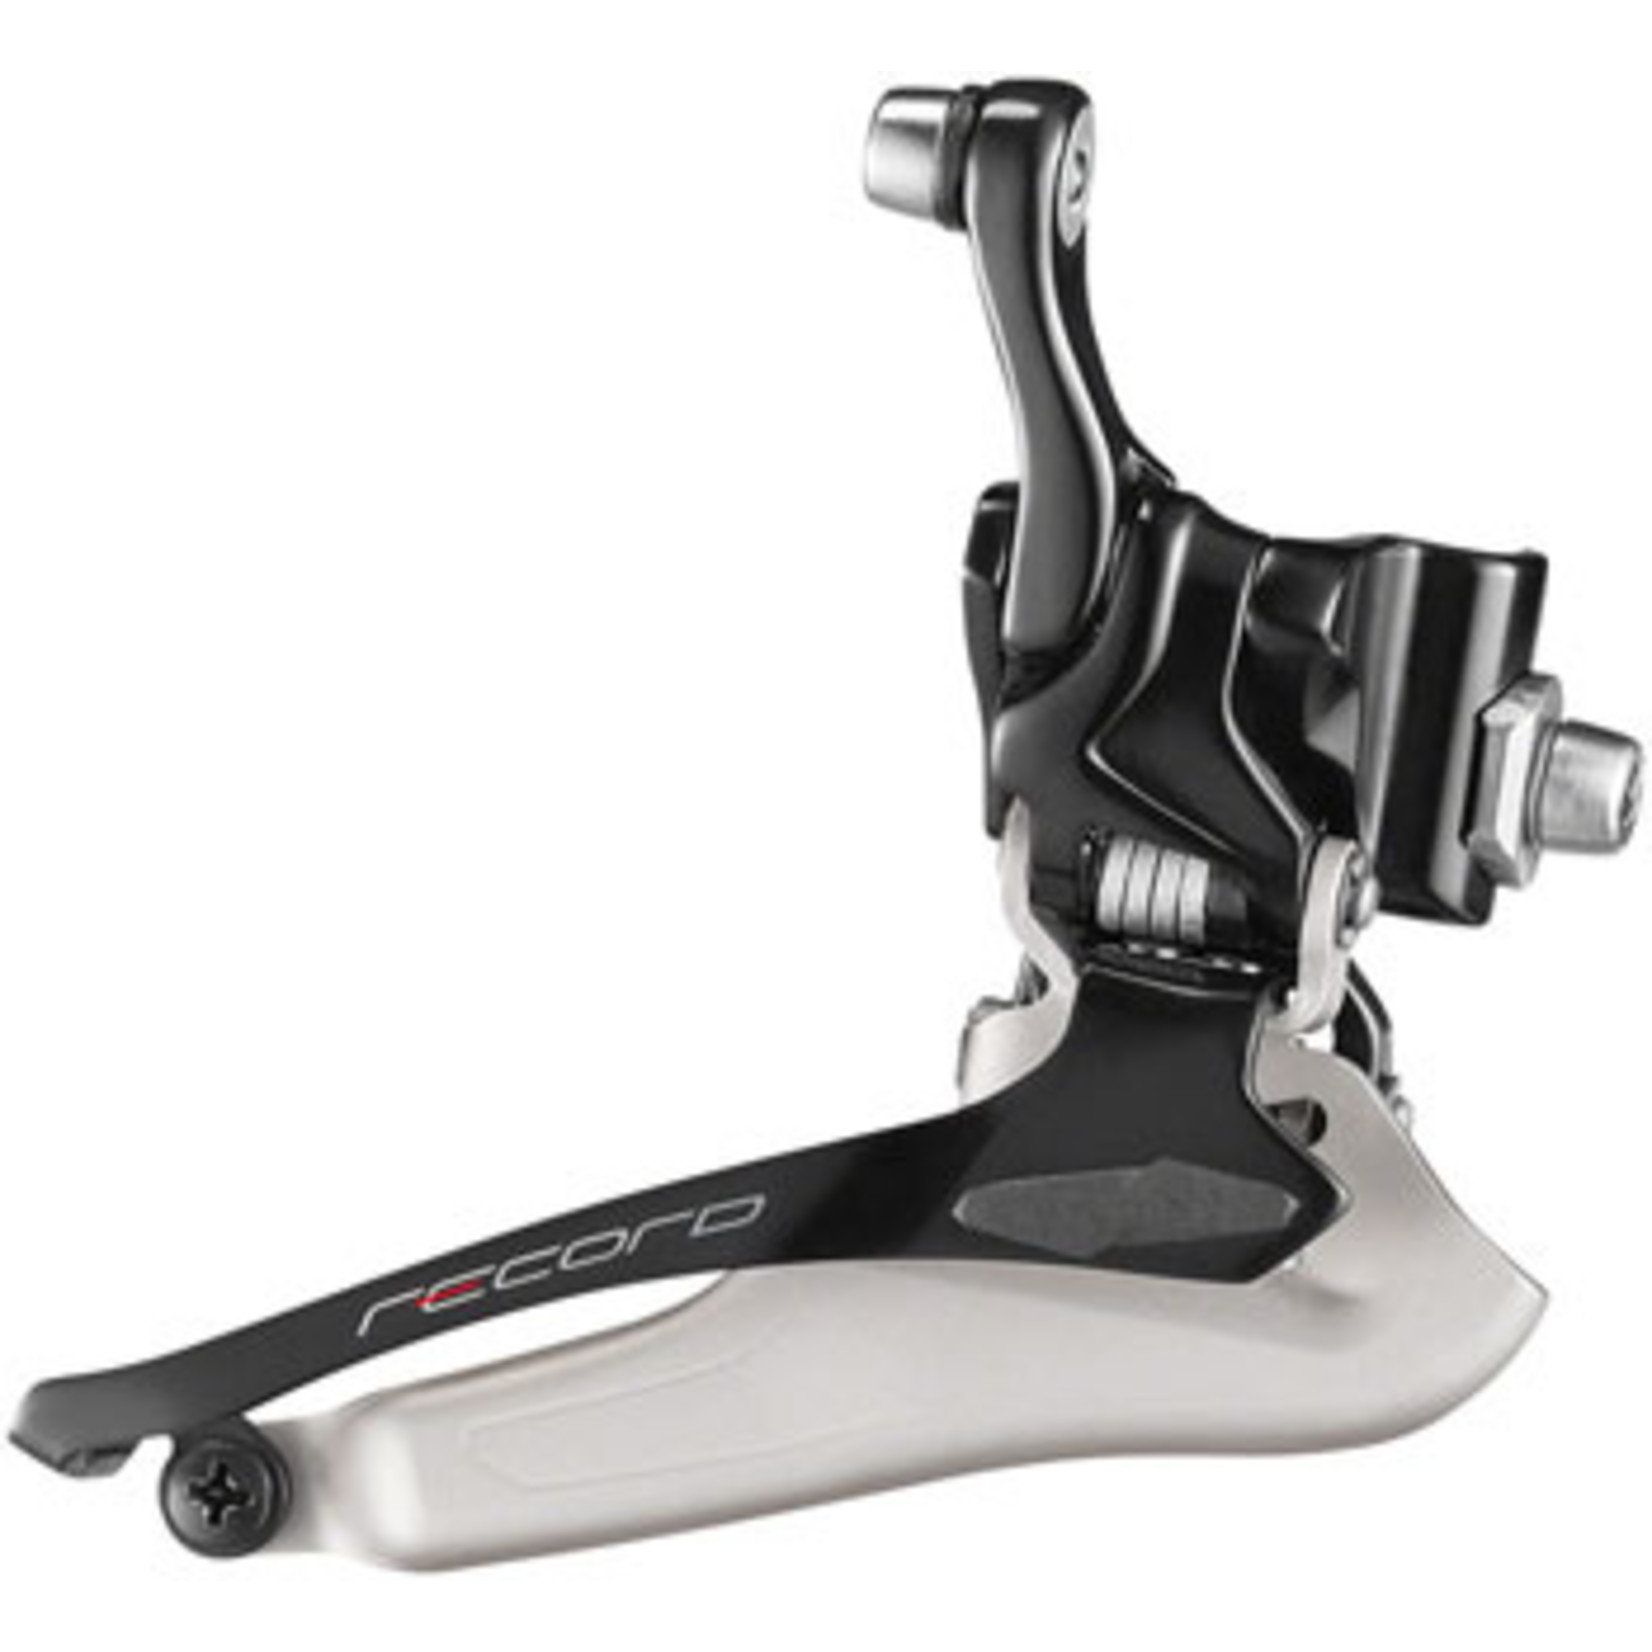 Campagnolo Campagnolo Record 12s Front Derailleur, 12-Speed, Braze-on, Carbon